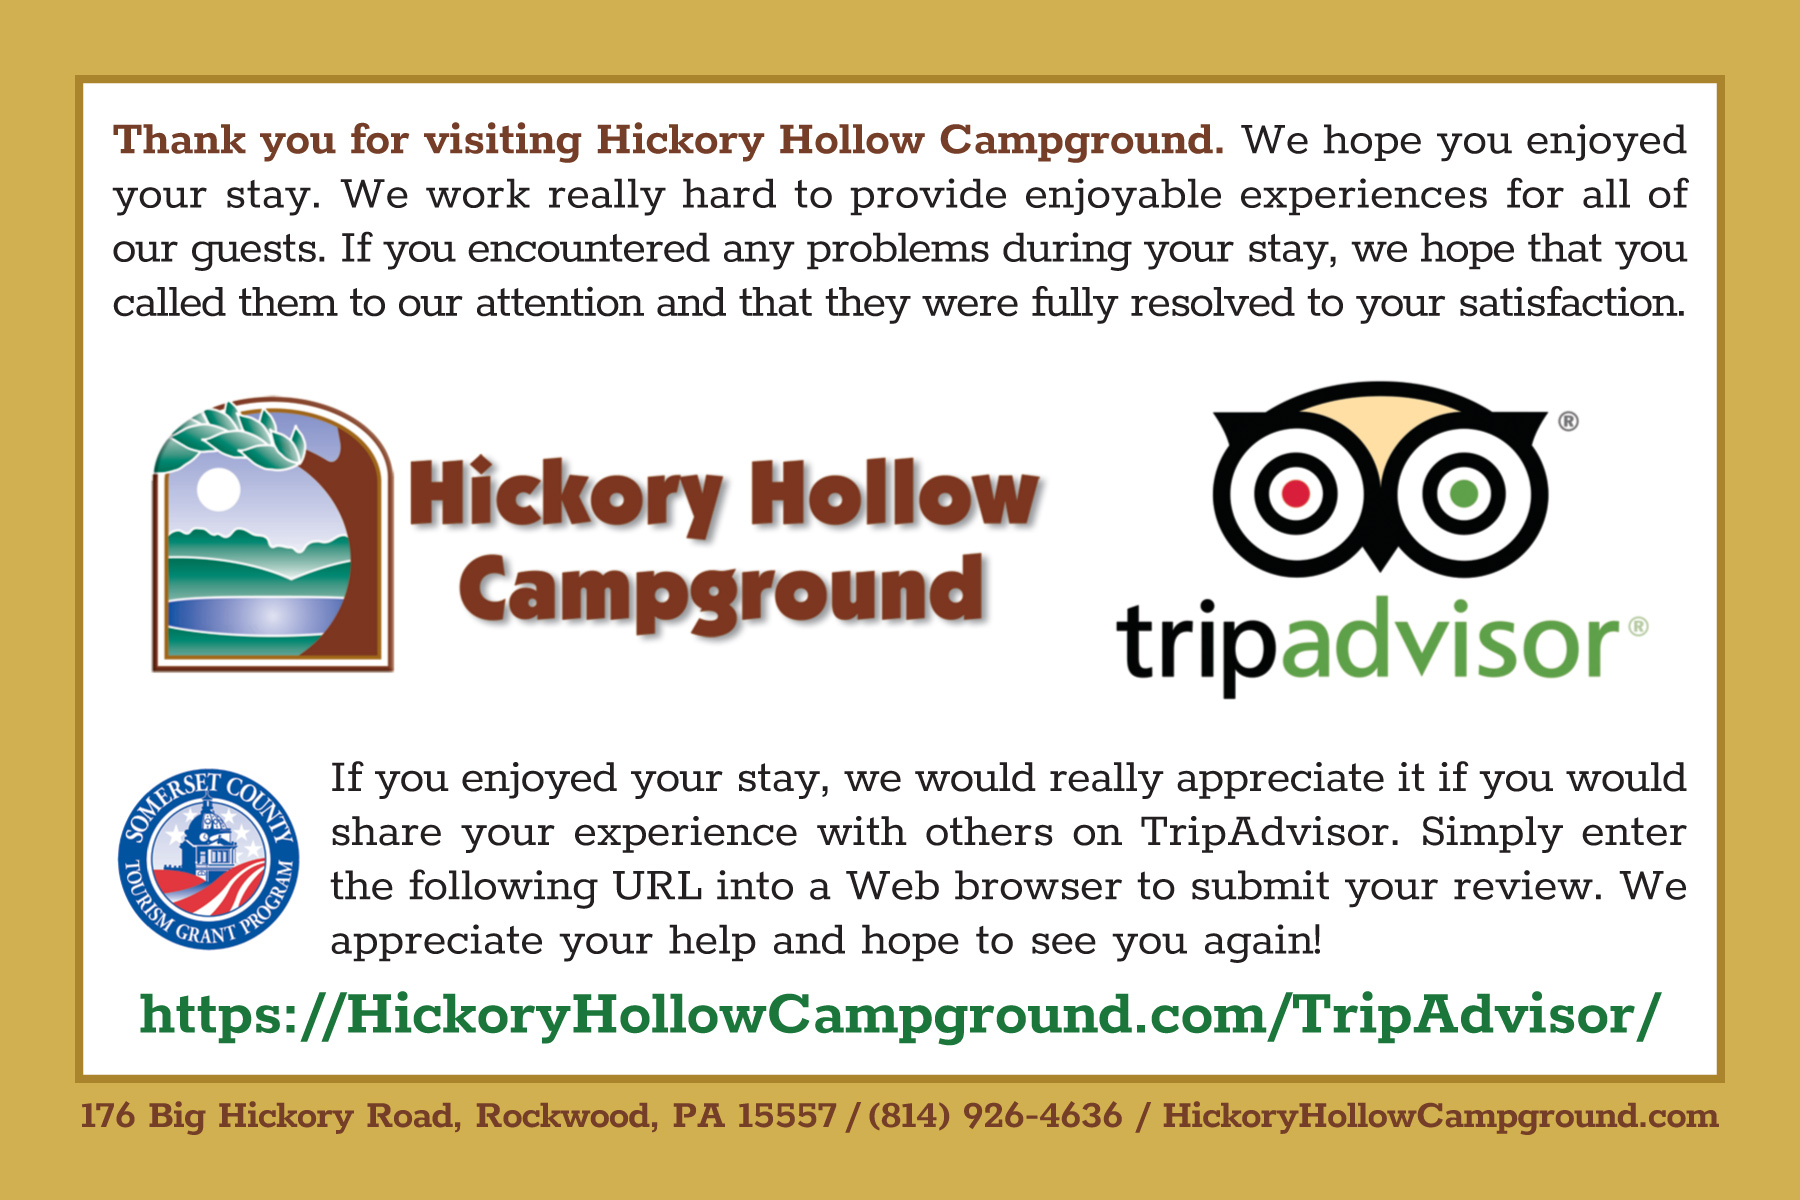 Hickory Hollow Campground Postcard by Pelland Advertising